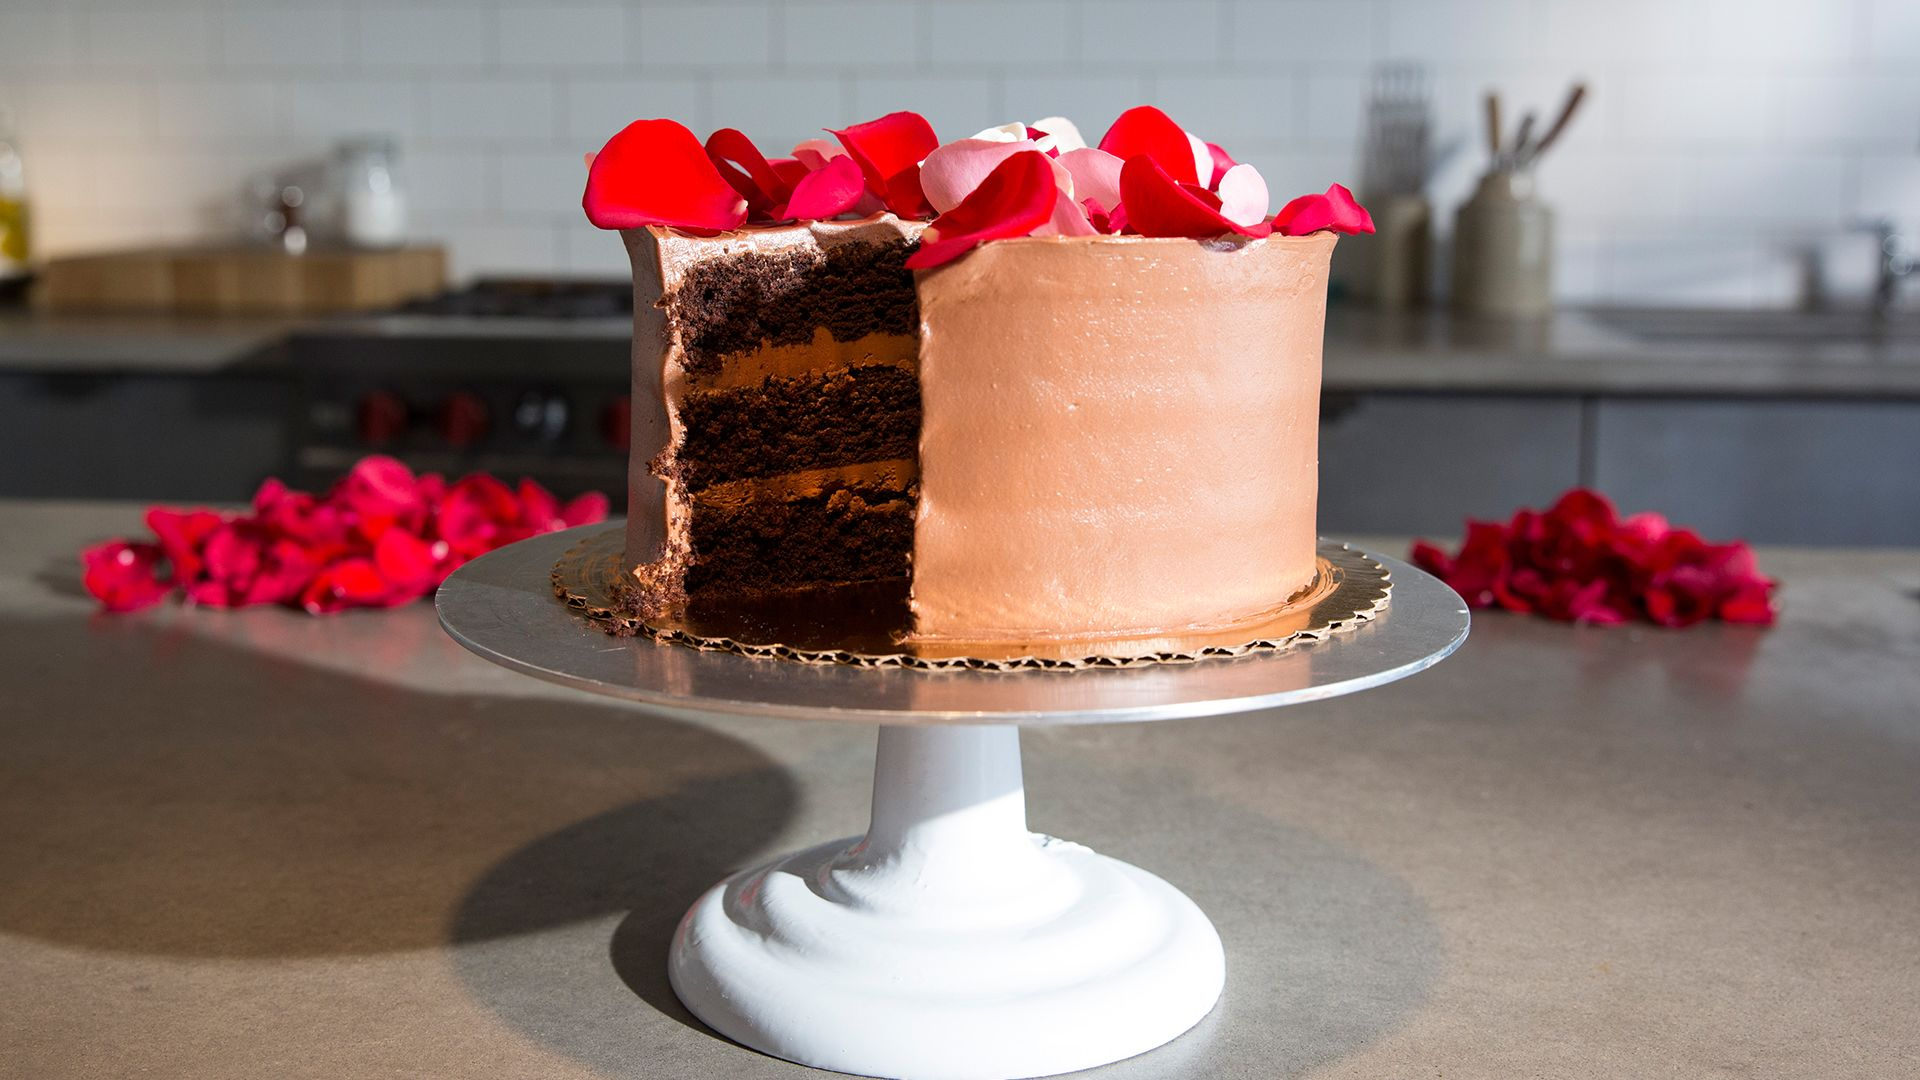 How to Make an Edible Rose Covered Cake for Your Valentine